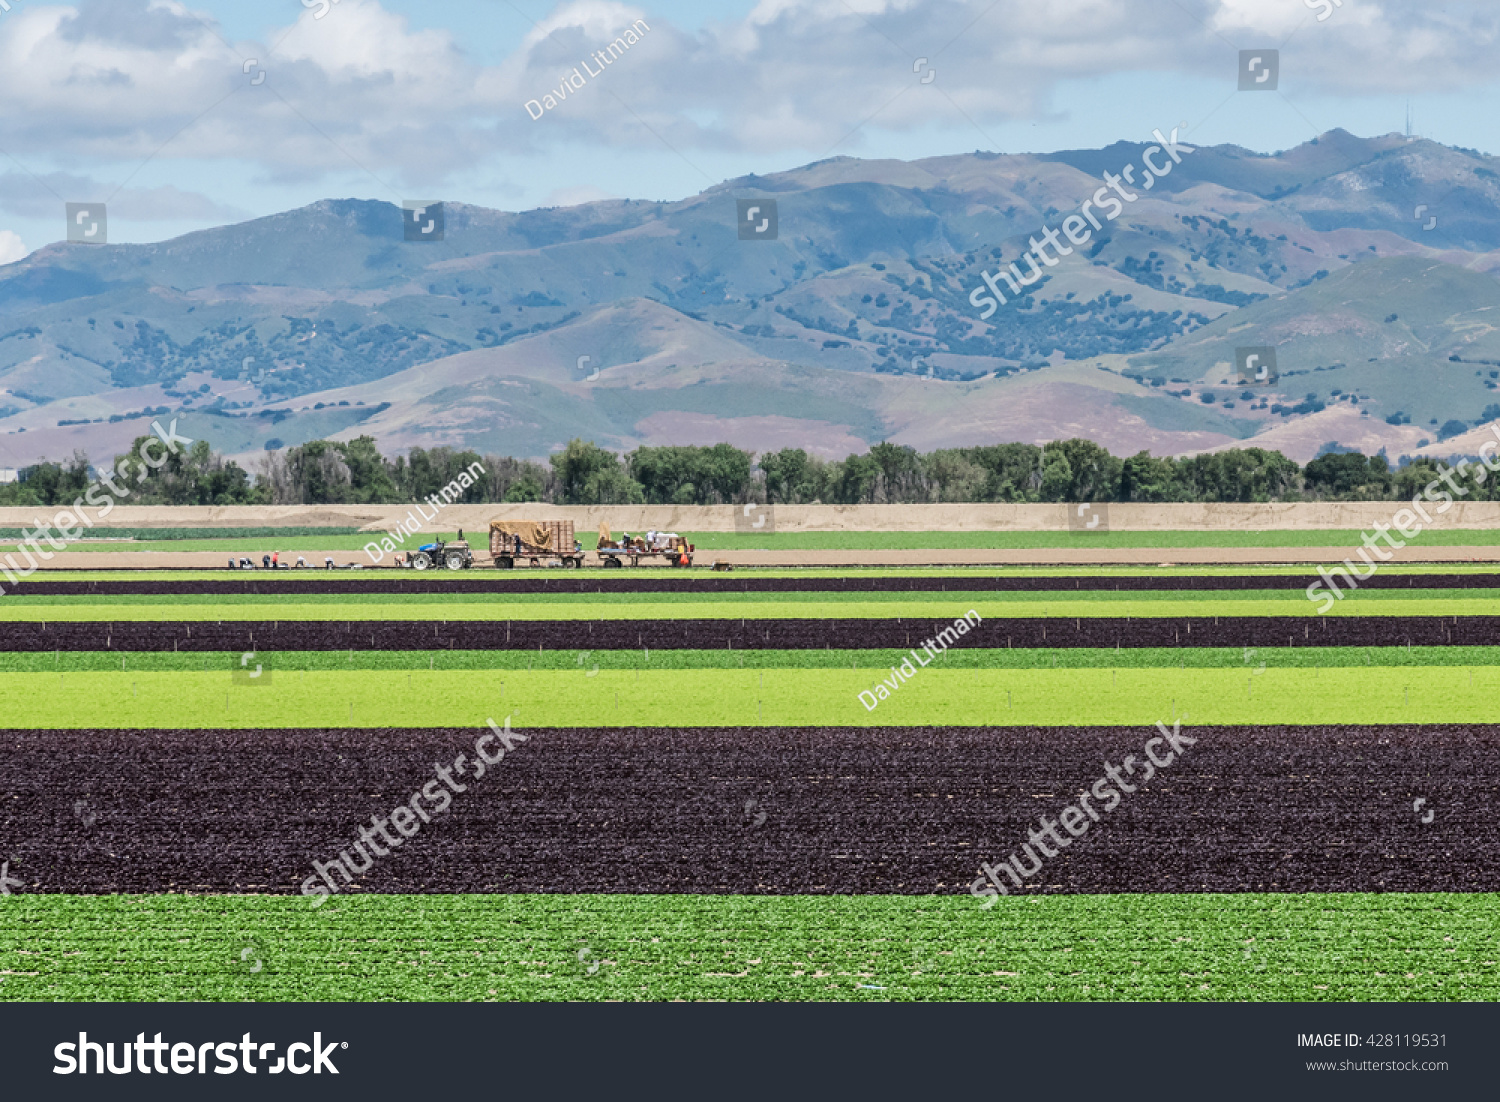 Alternating rows of green and purple lettuce are harvested in the Salinas Valley of central California, with the Gabilan Mountains in the background.